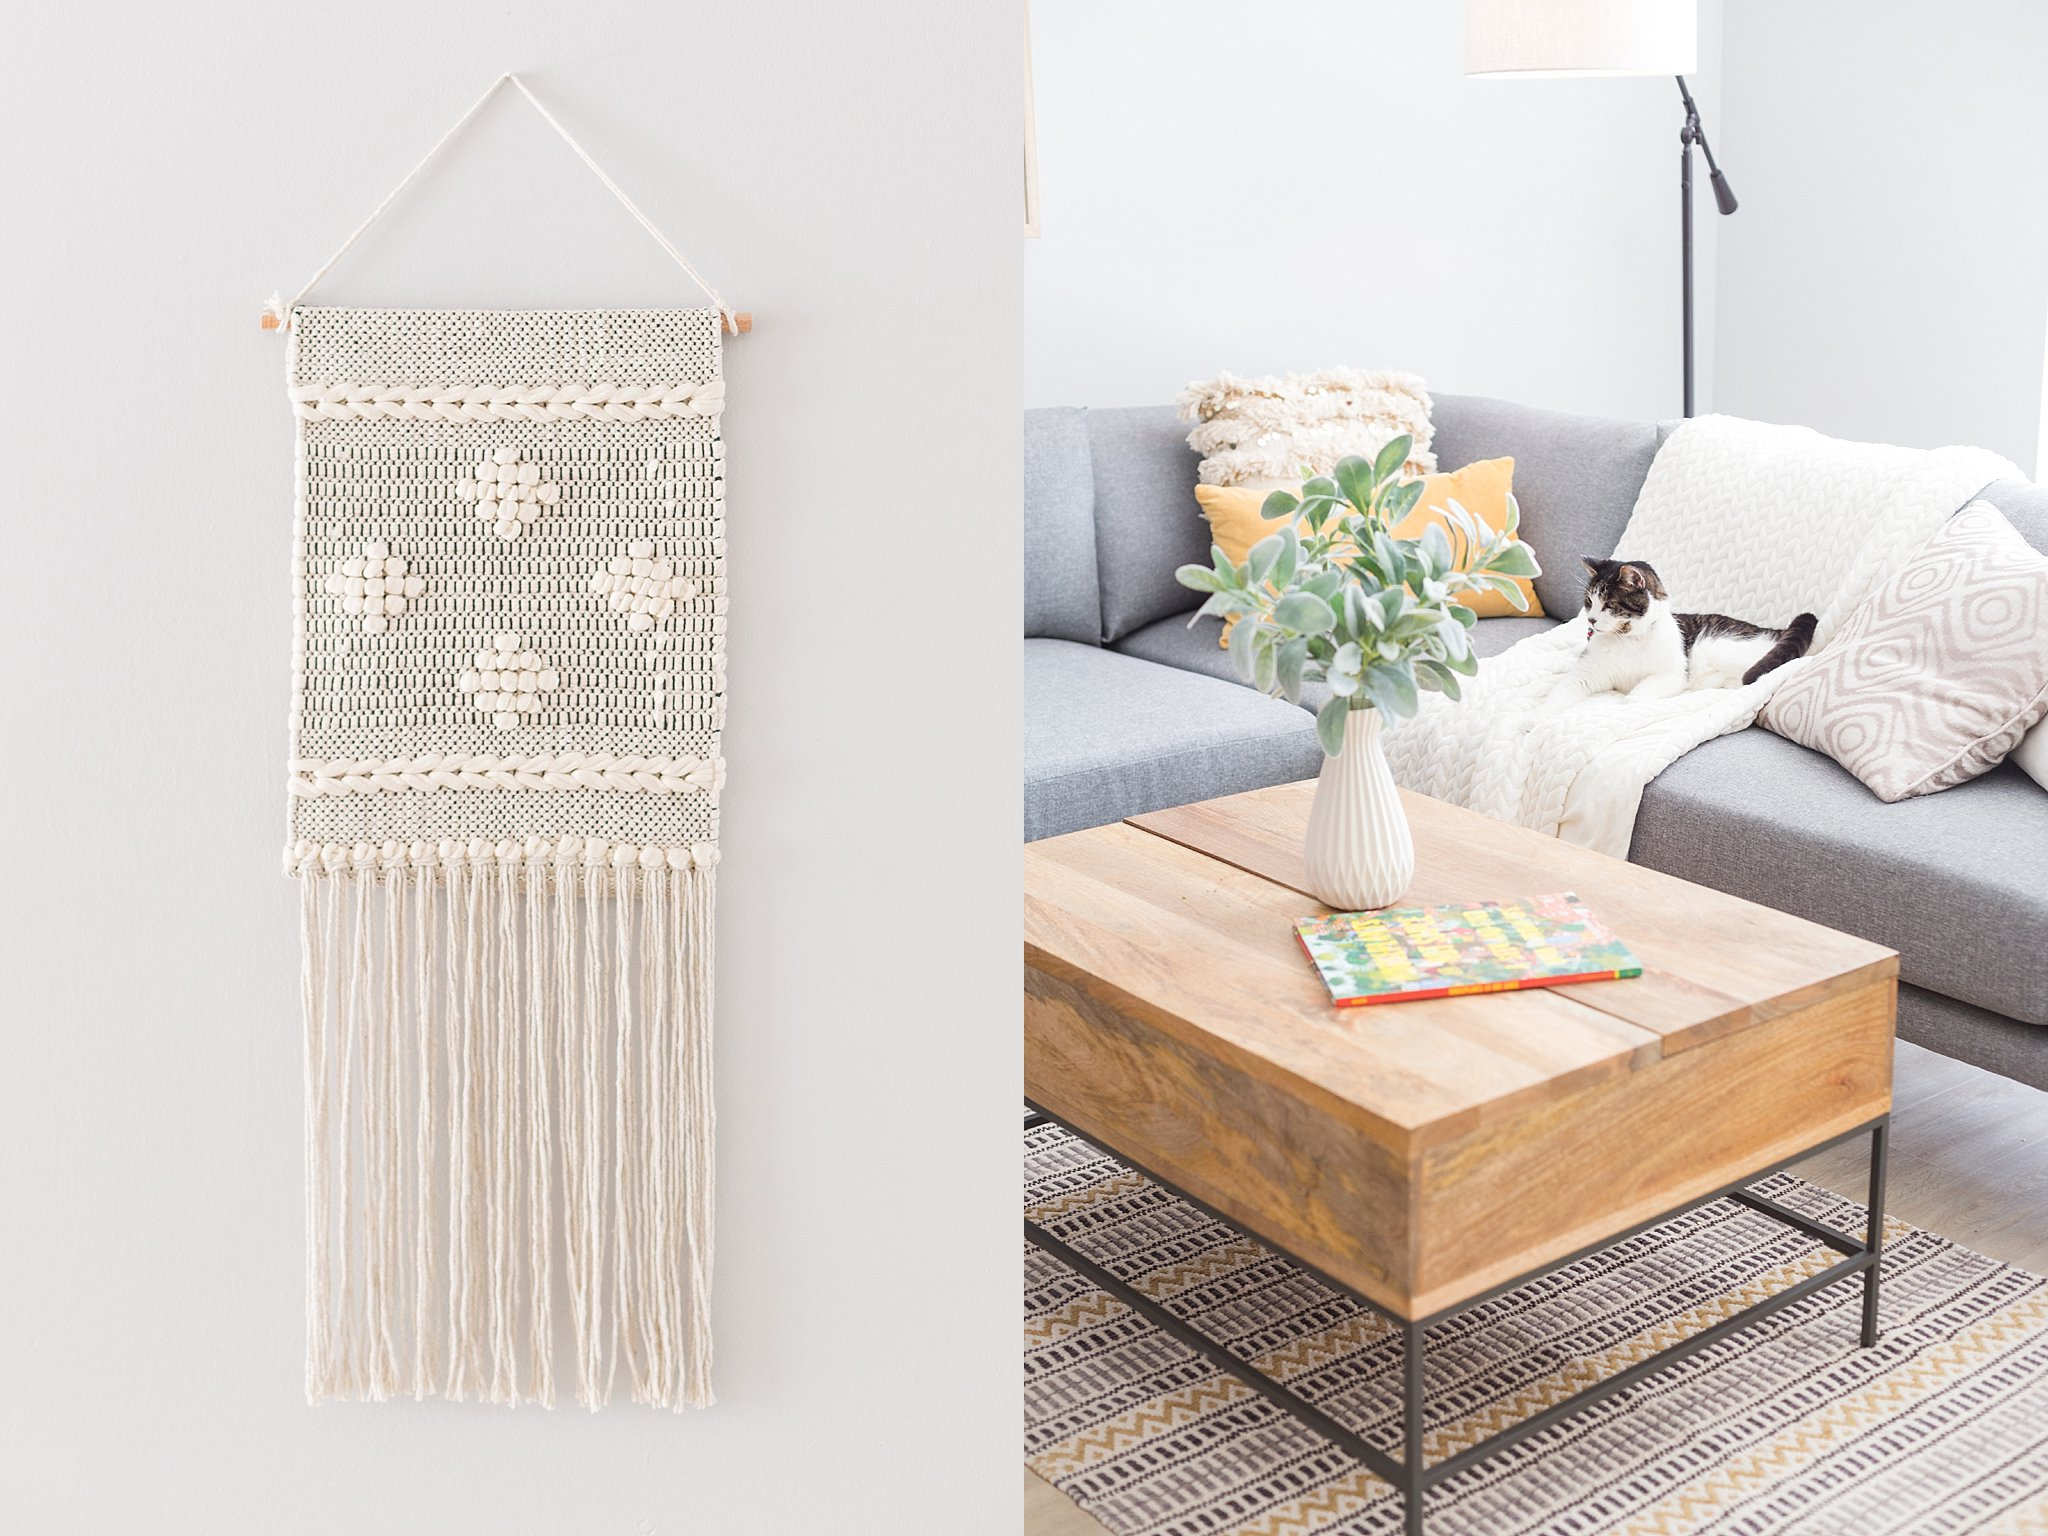 Woven rug and wall accent